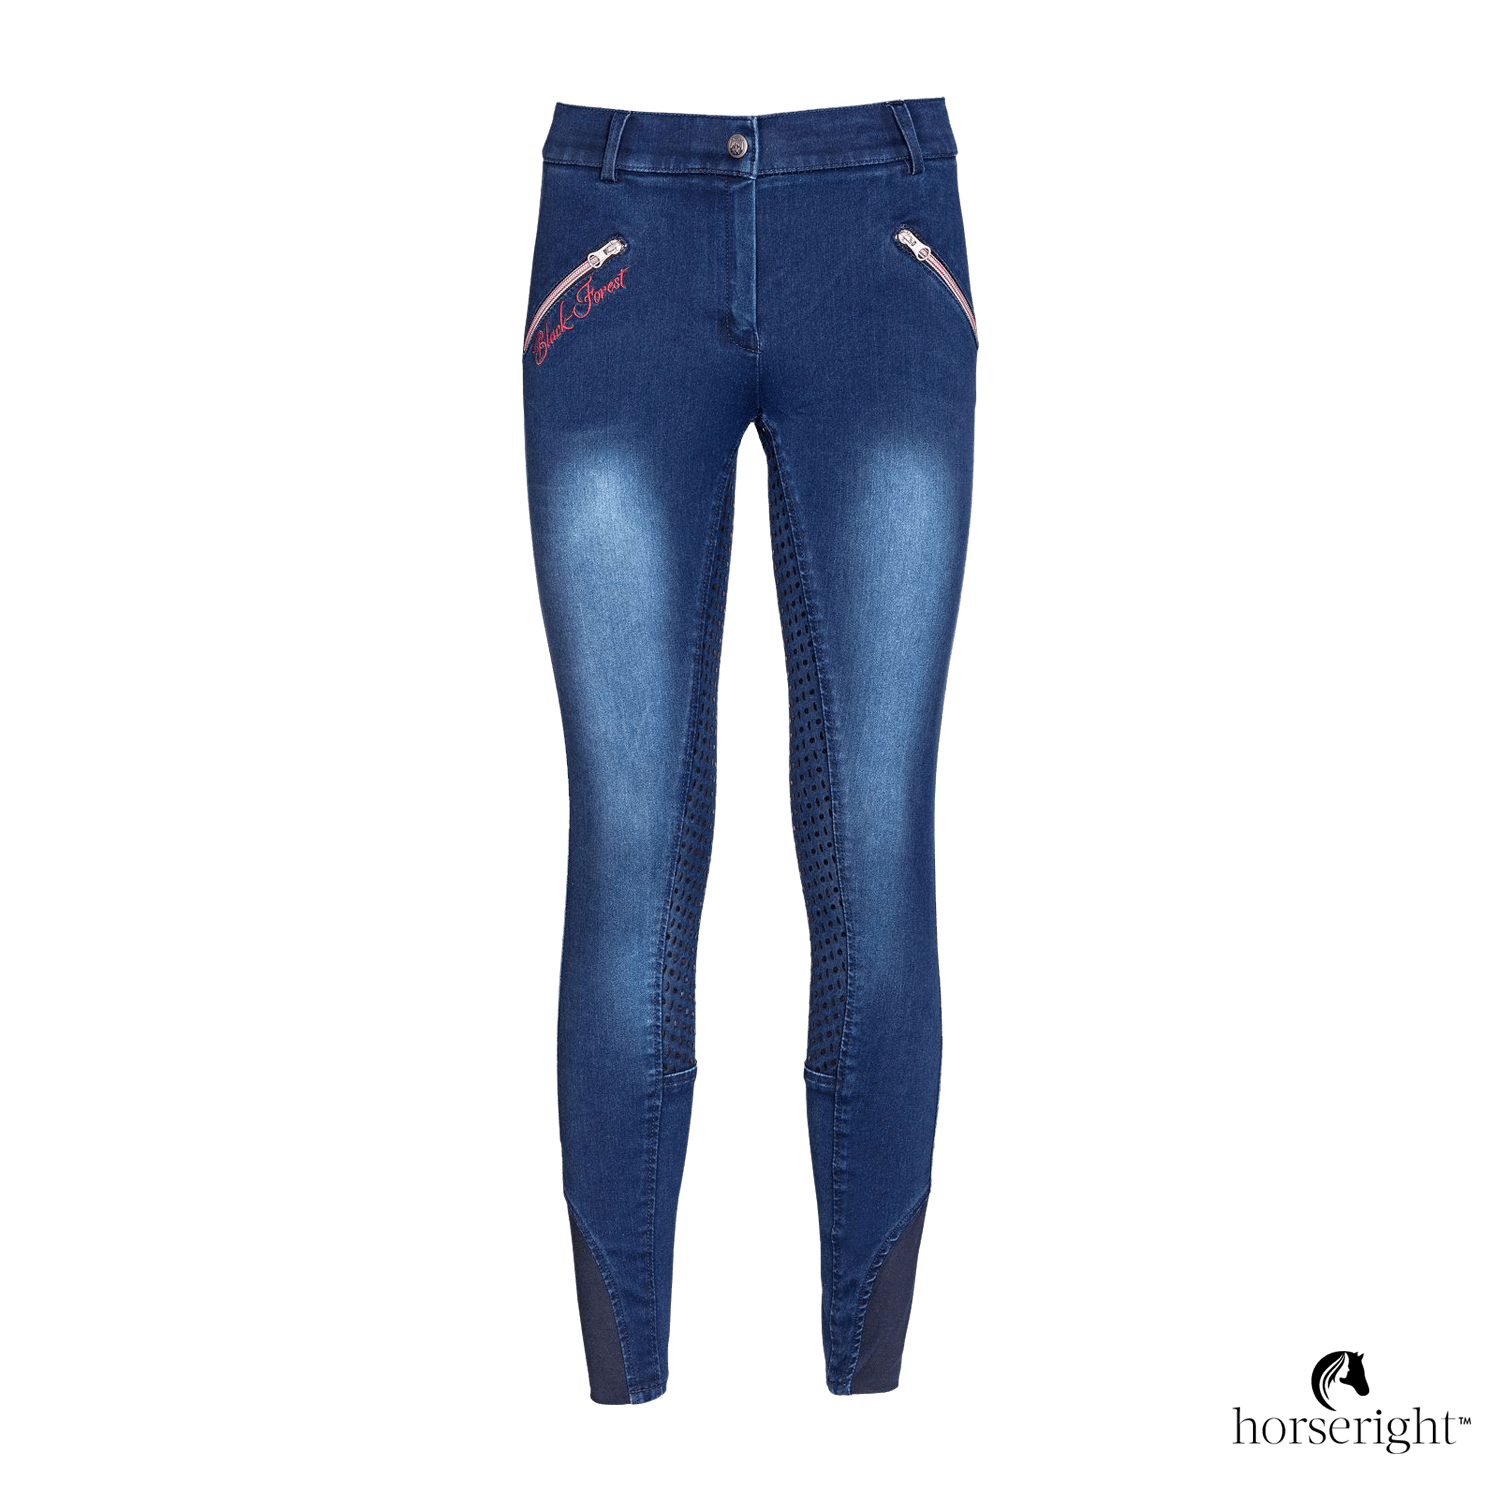 Black Forest Authentic Grip Children's Jodhpur Jeans